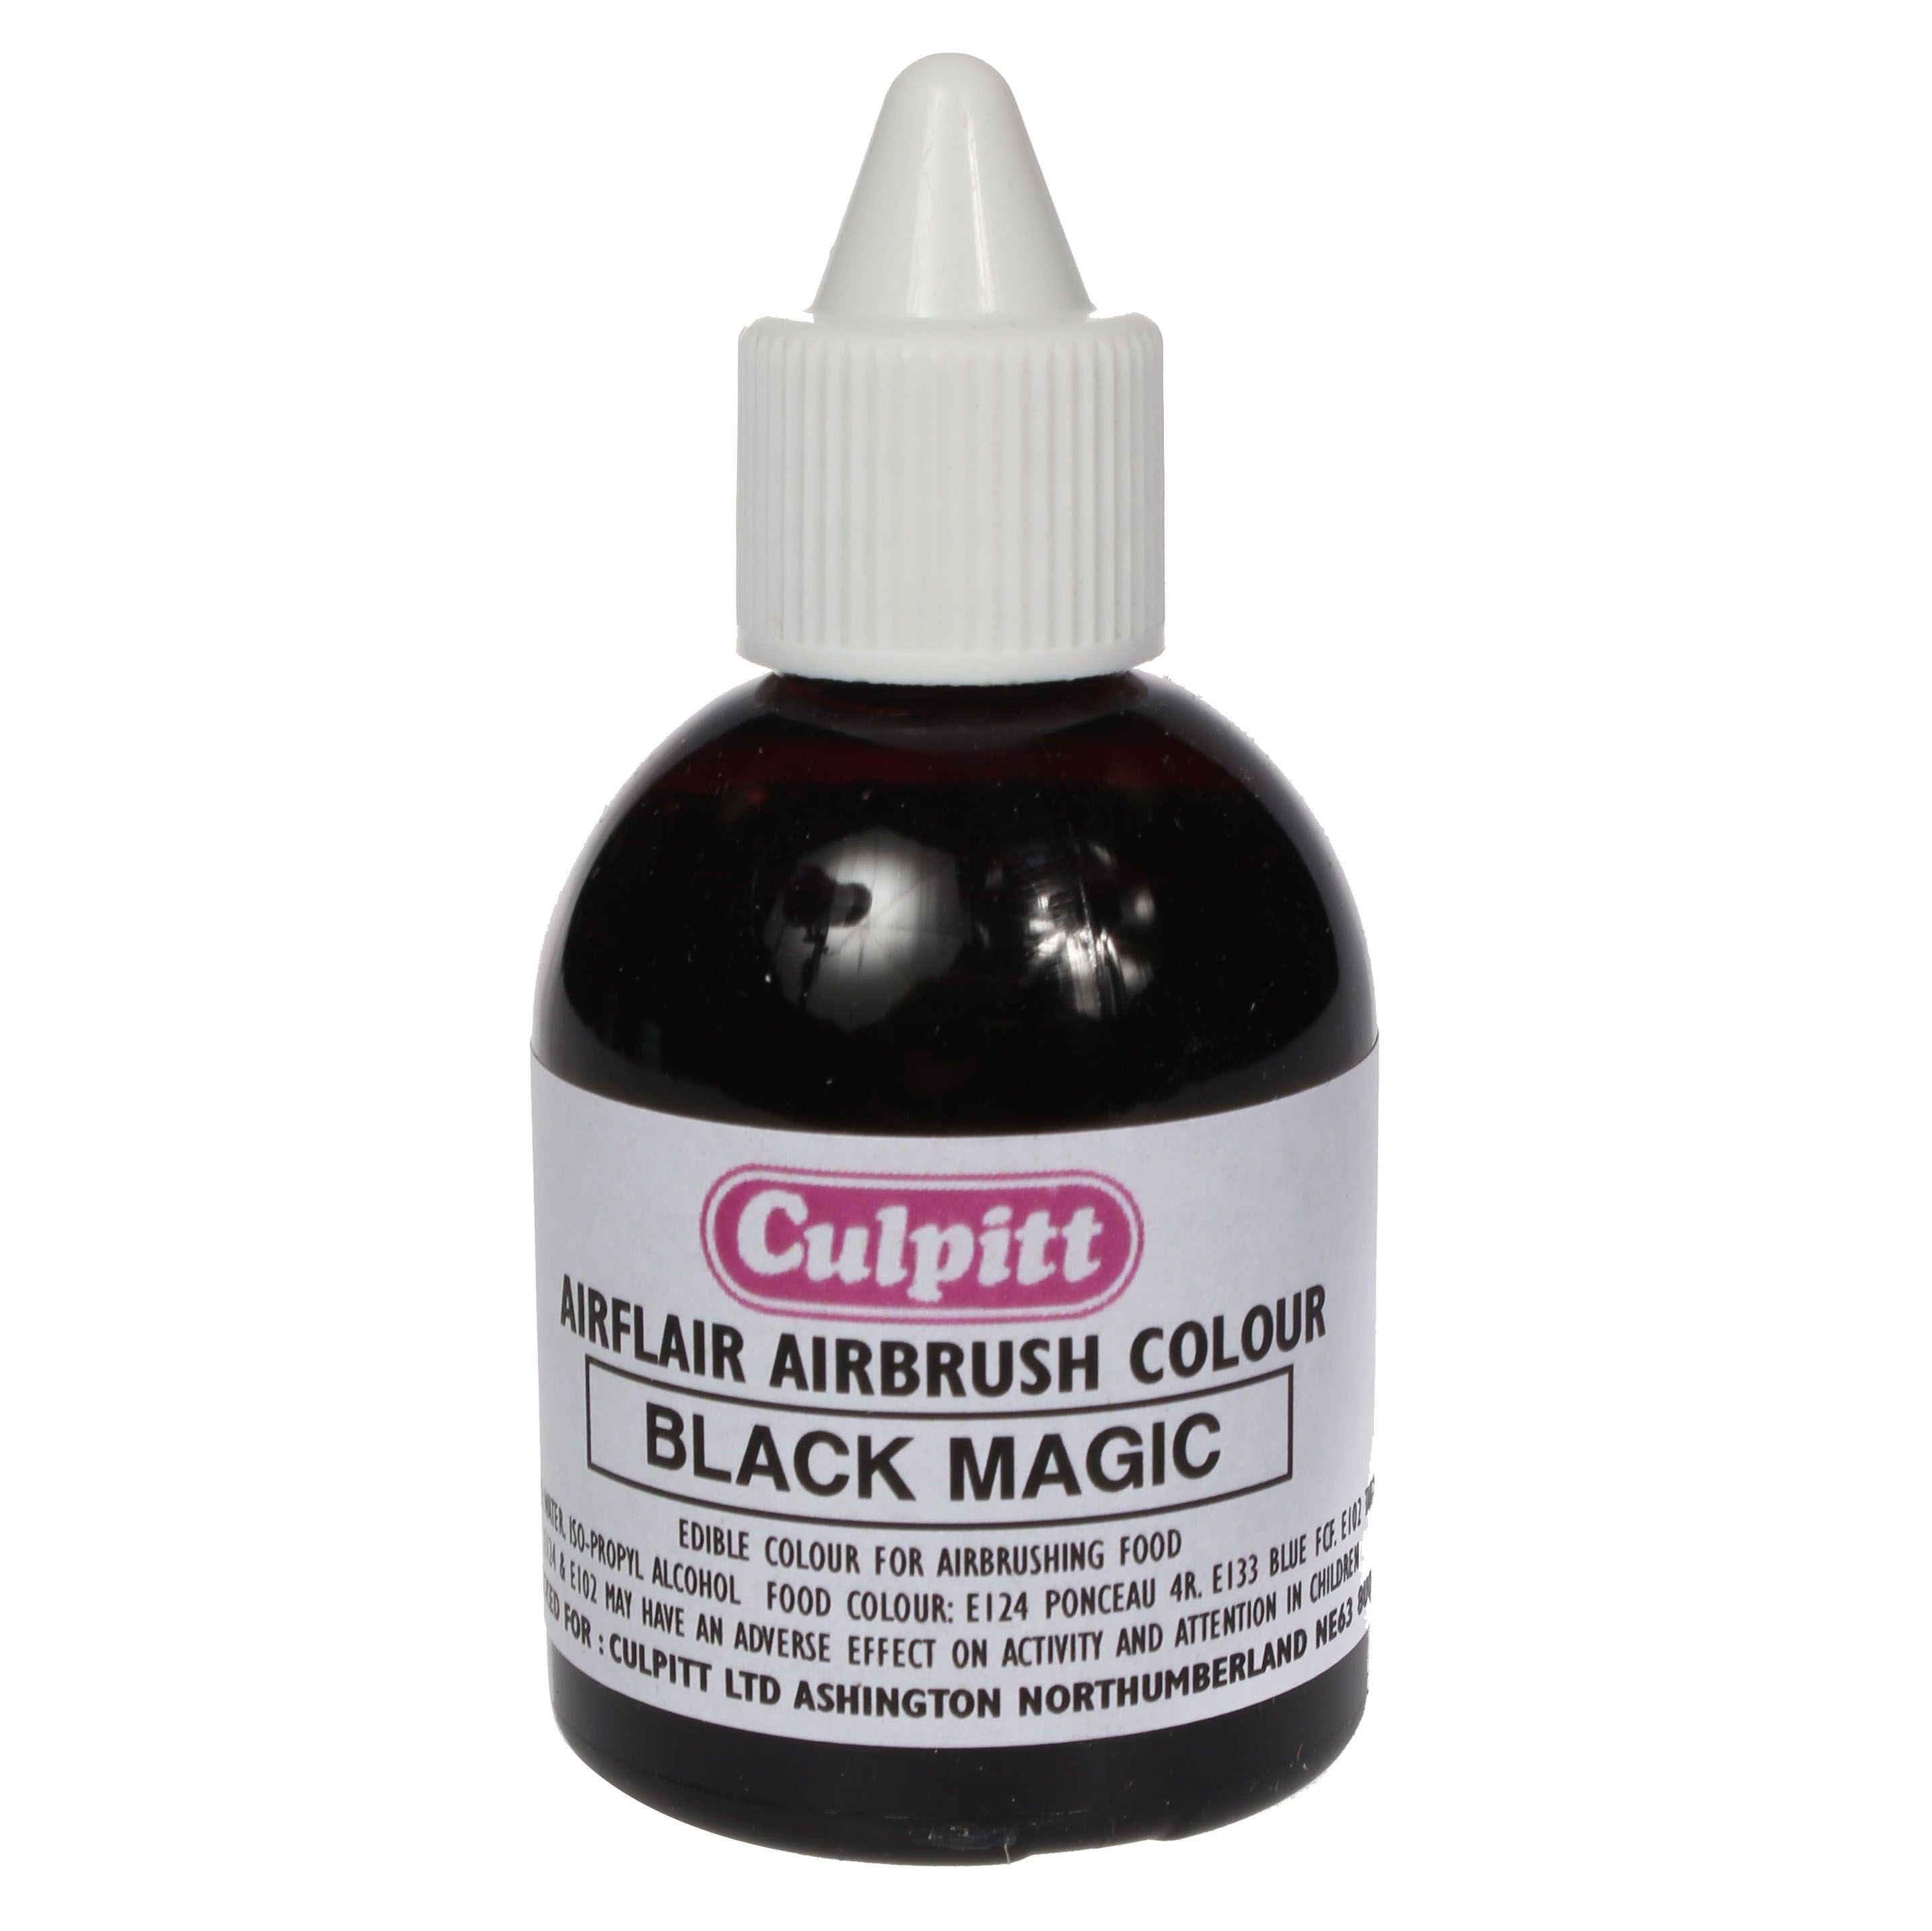 Edible Airbrush Colour Black Magic | Food Colours | Cake Decorating ...